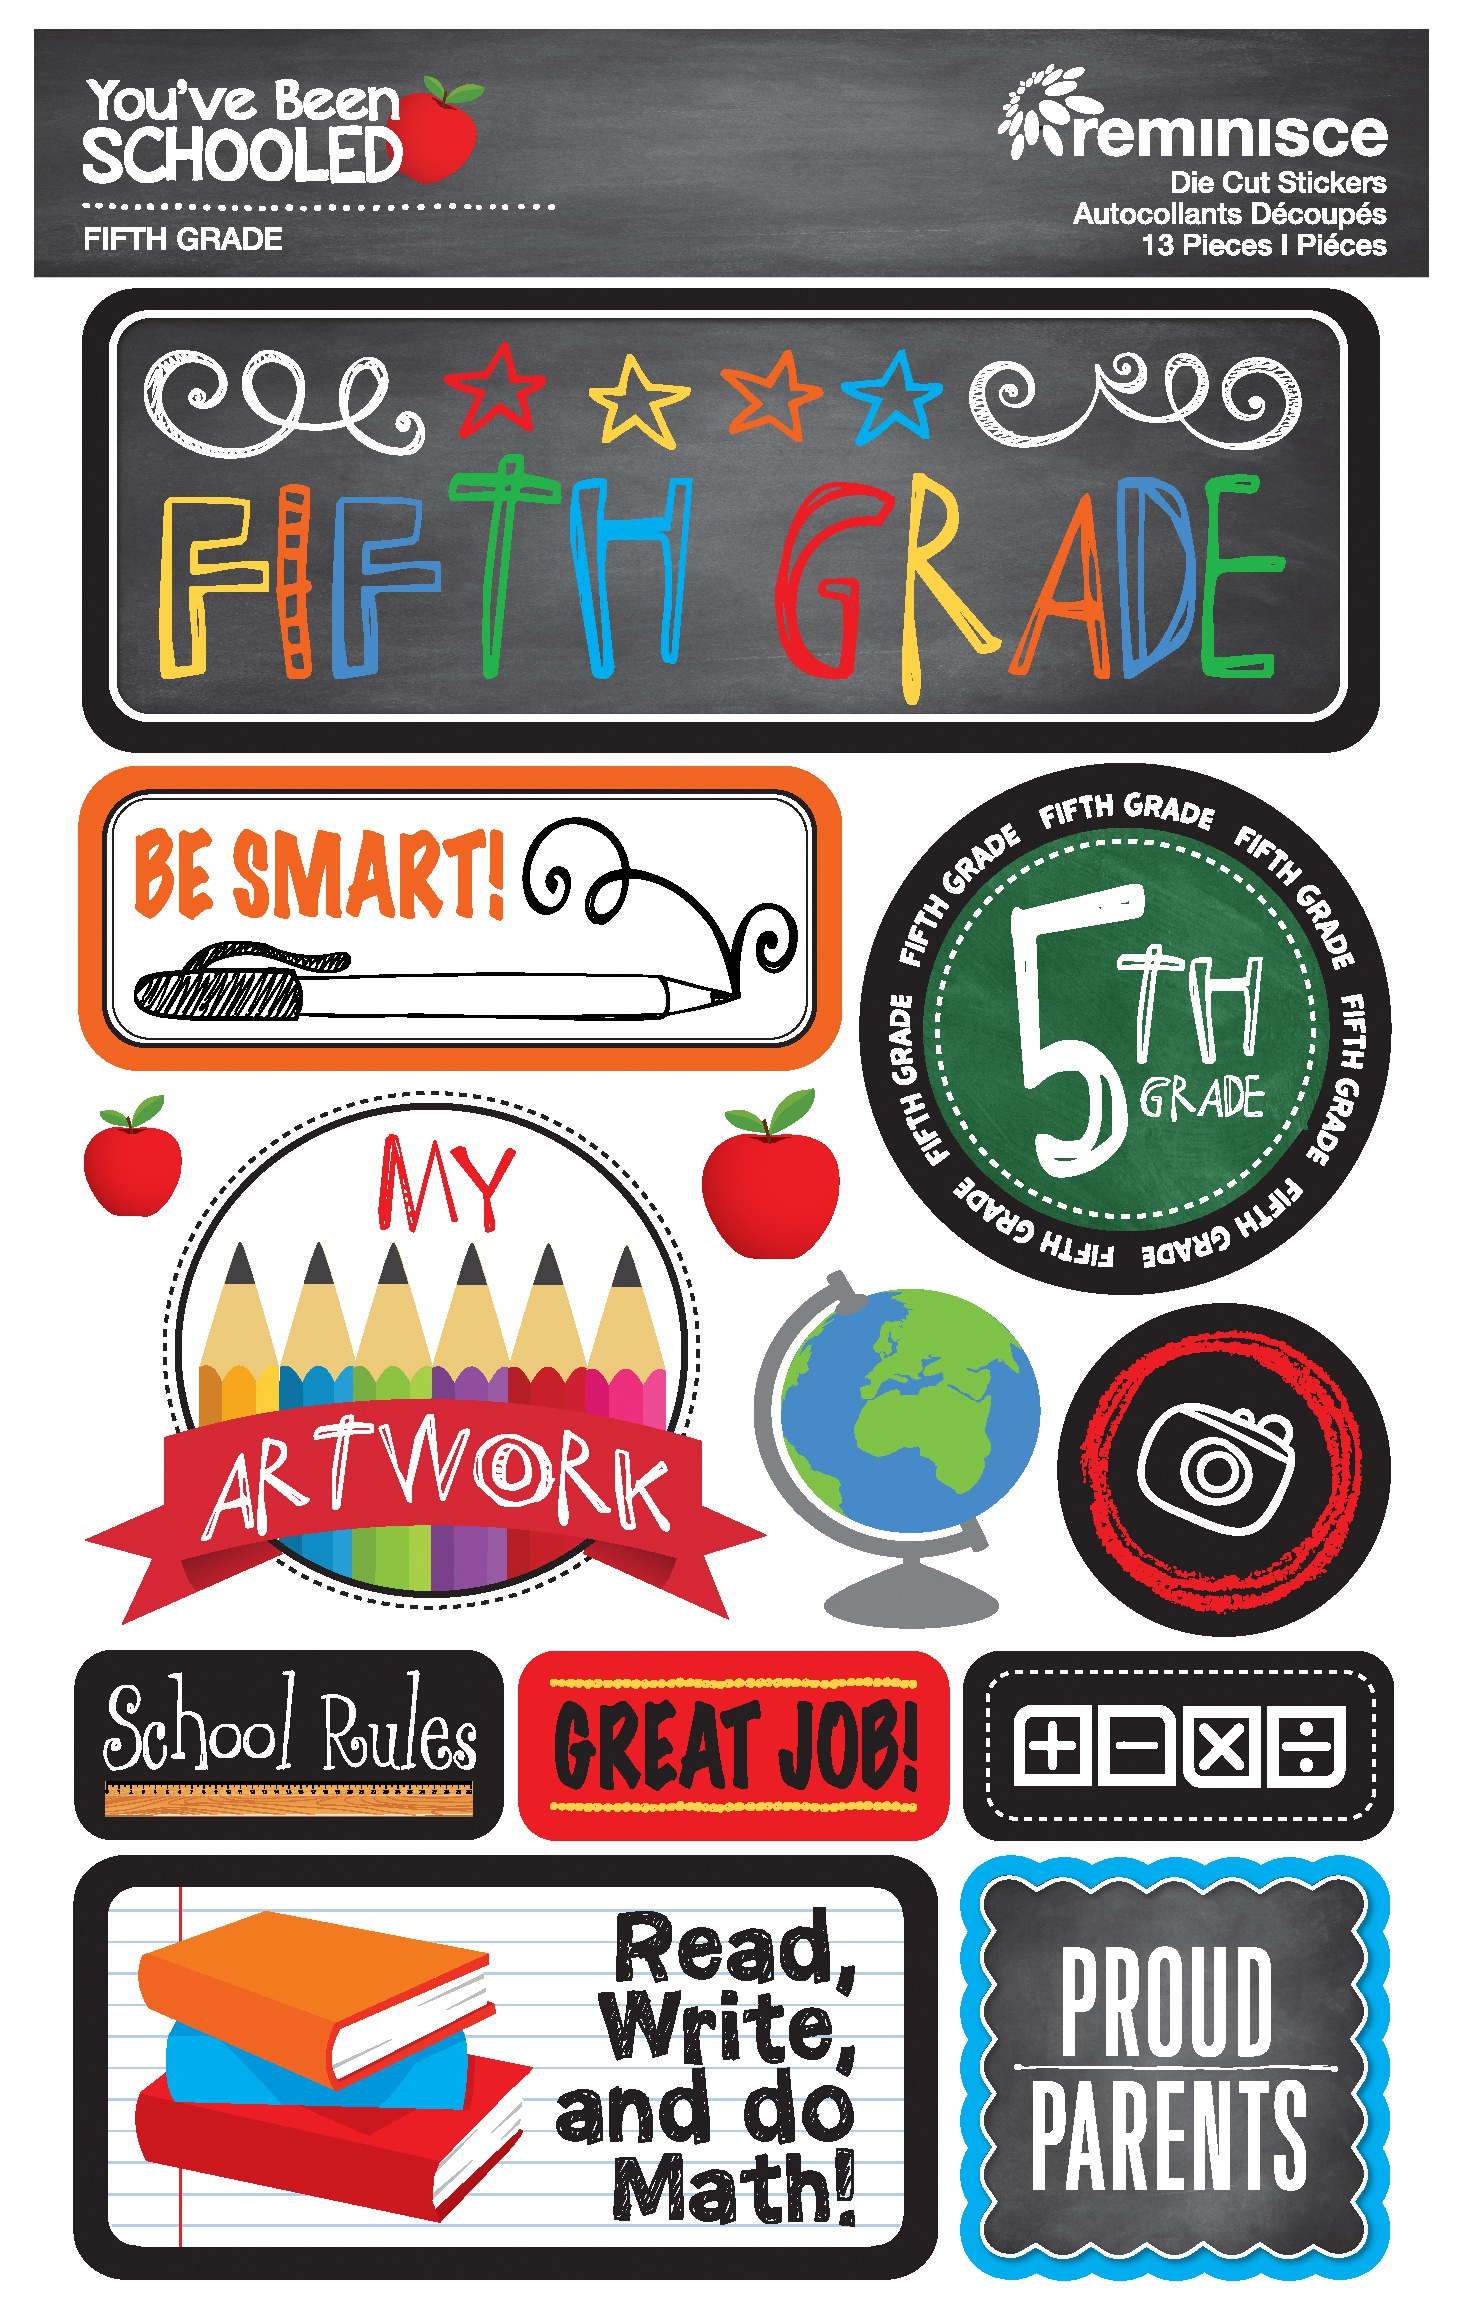 Reminisce You've Been Schooled -  5th Grade 3D Dimensional Stickers